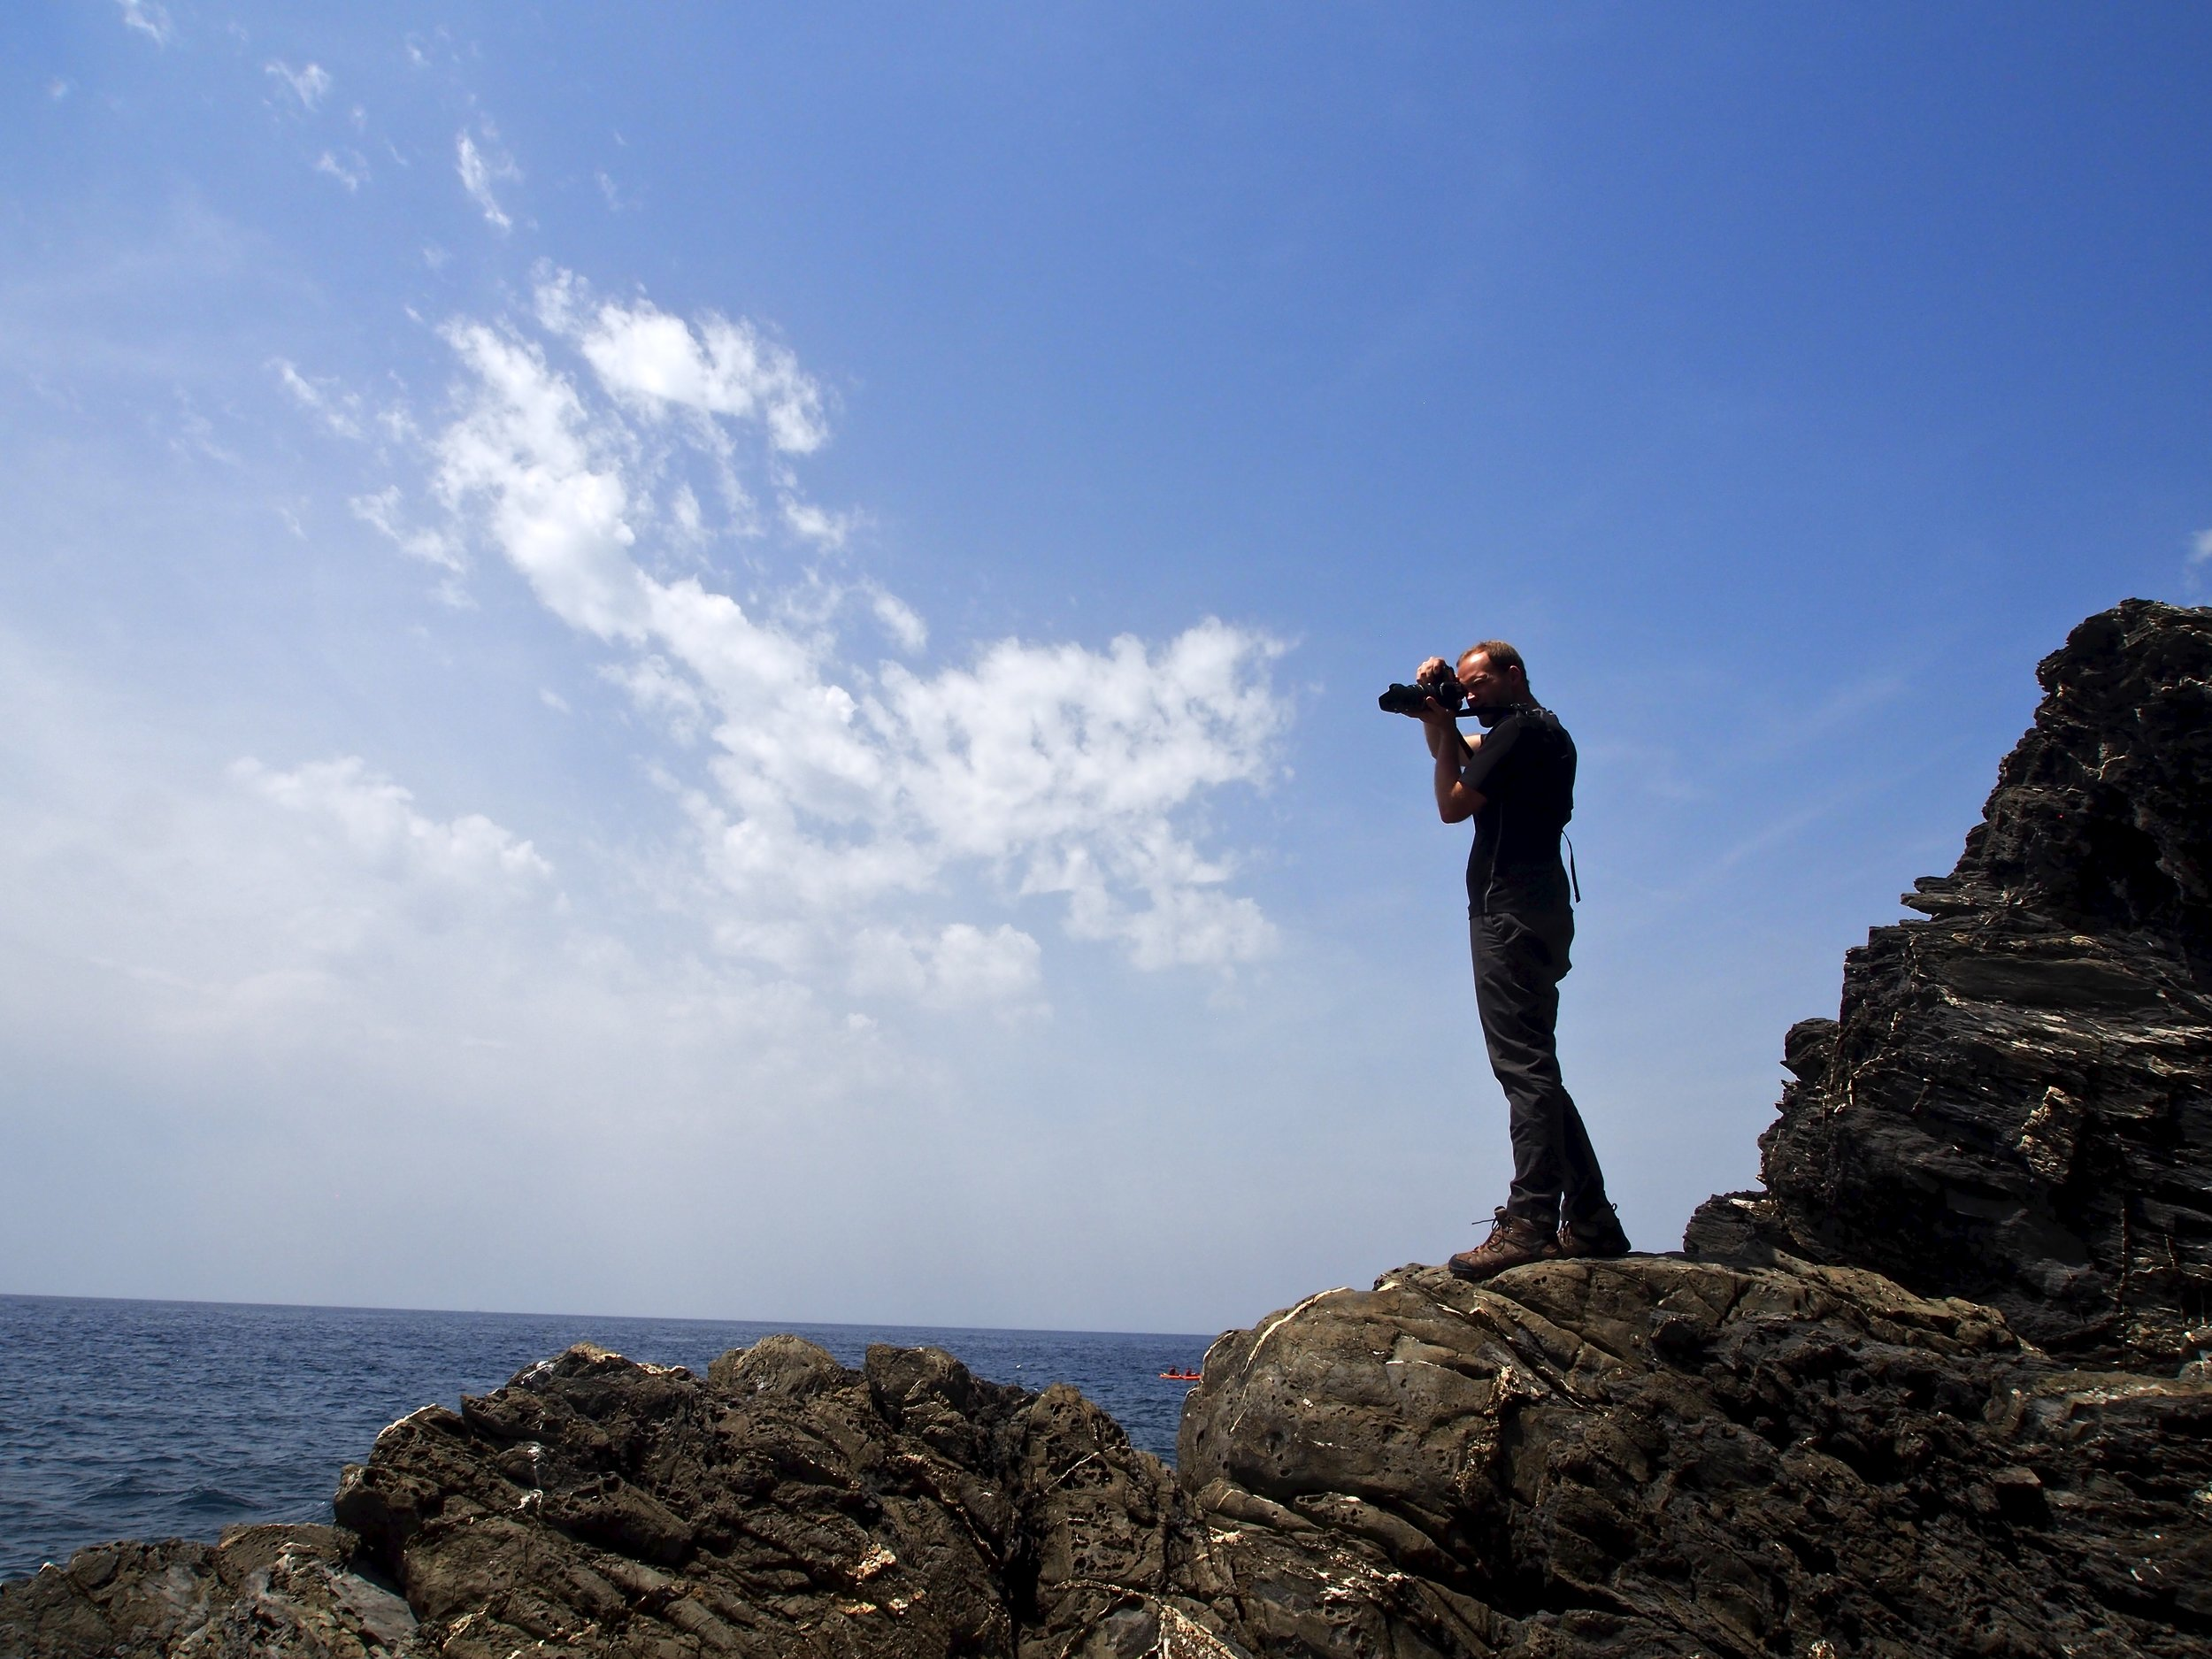 Shooting on the ocean in Cinque Terre.